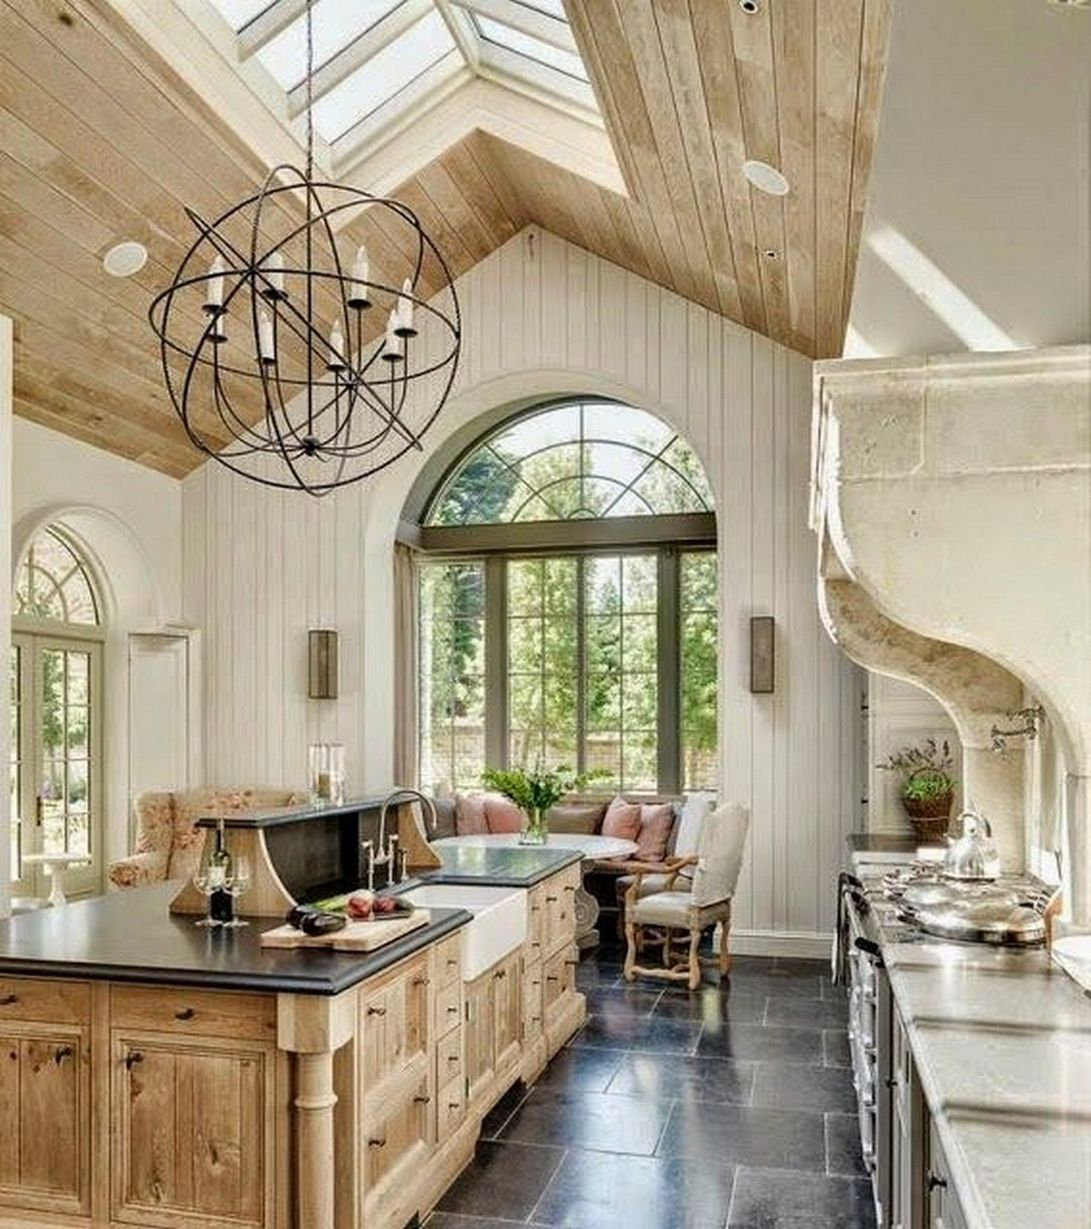 Pin By Andrea Nunley On Kitchens Home Country Kitchen Designs